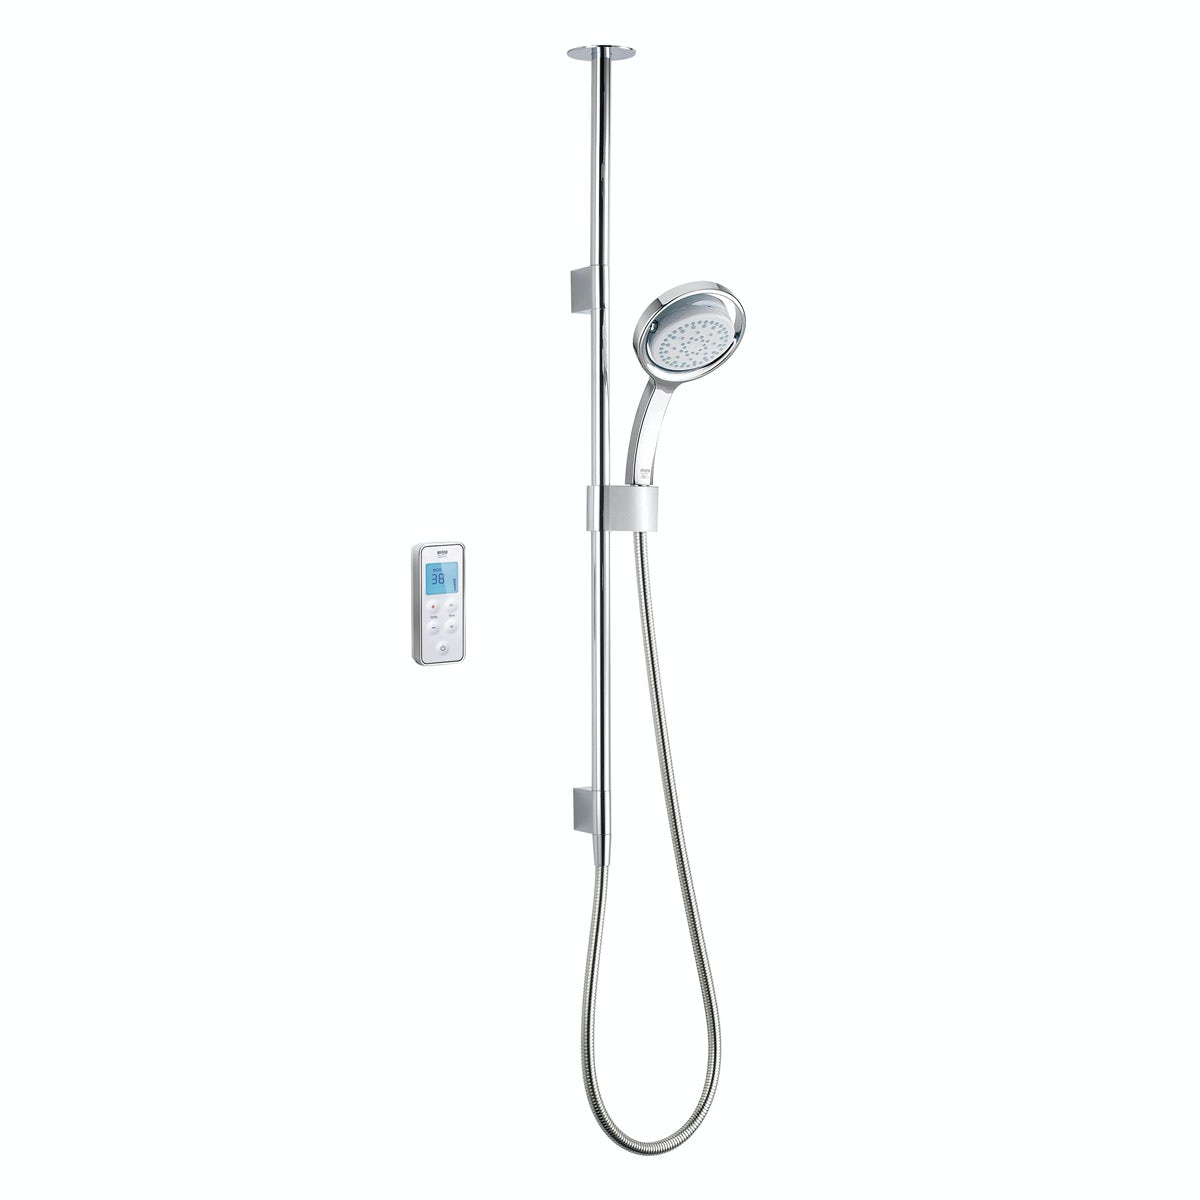 Mira Vision ceiling fed digital shower standard